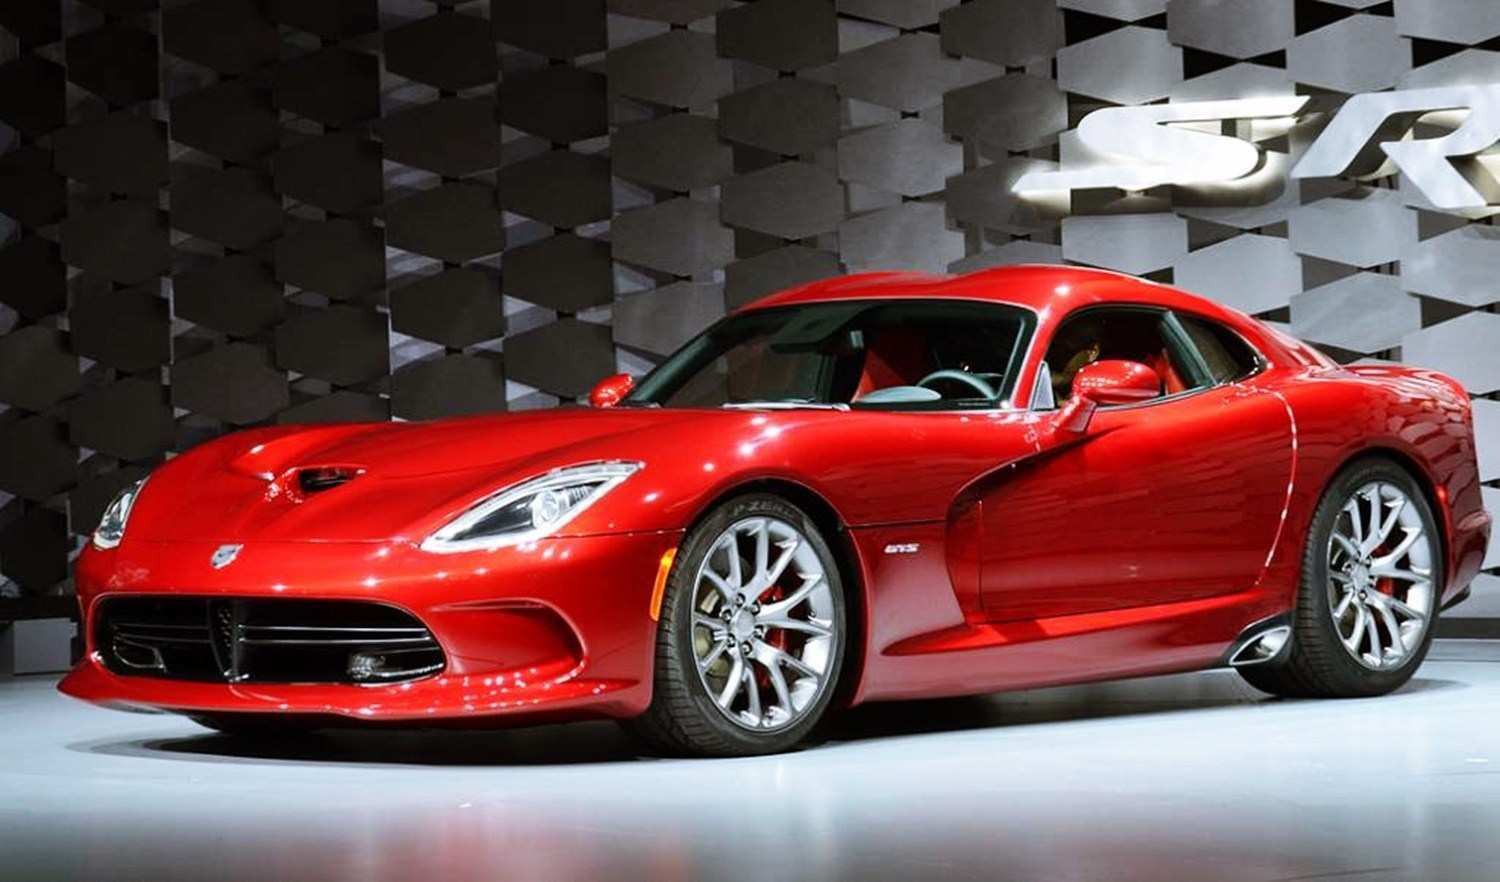 96 All New Dodge Viper 2020 Photos